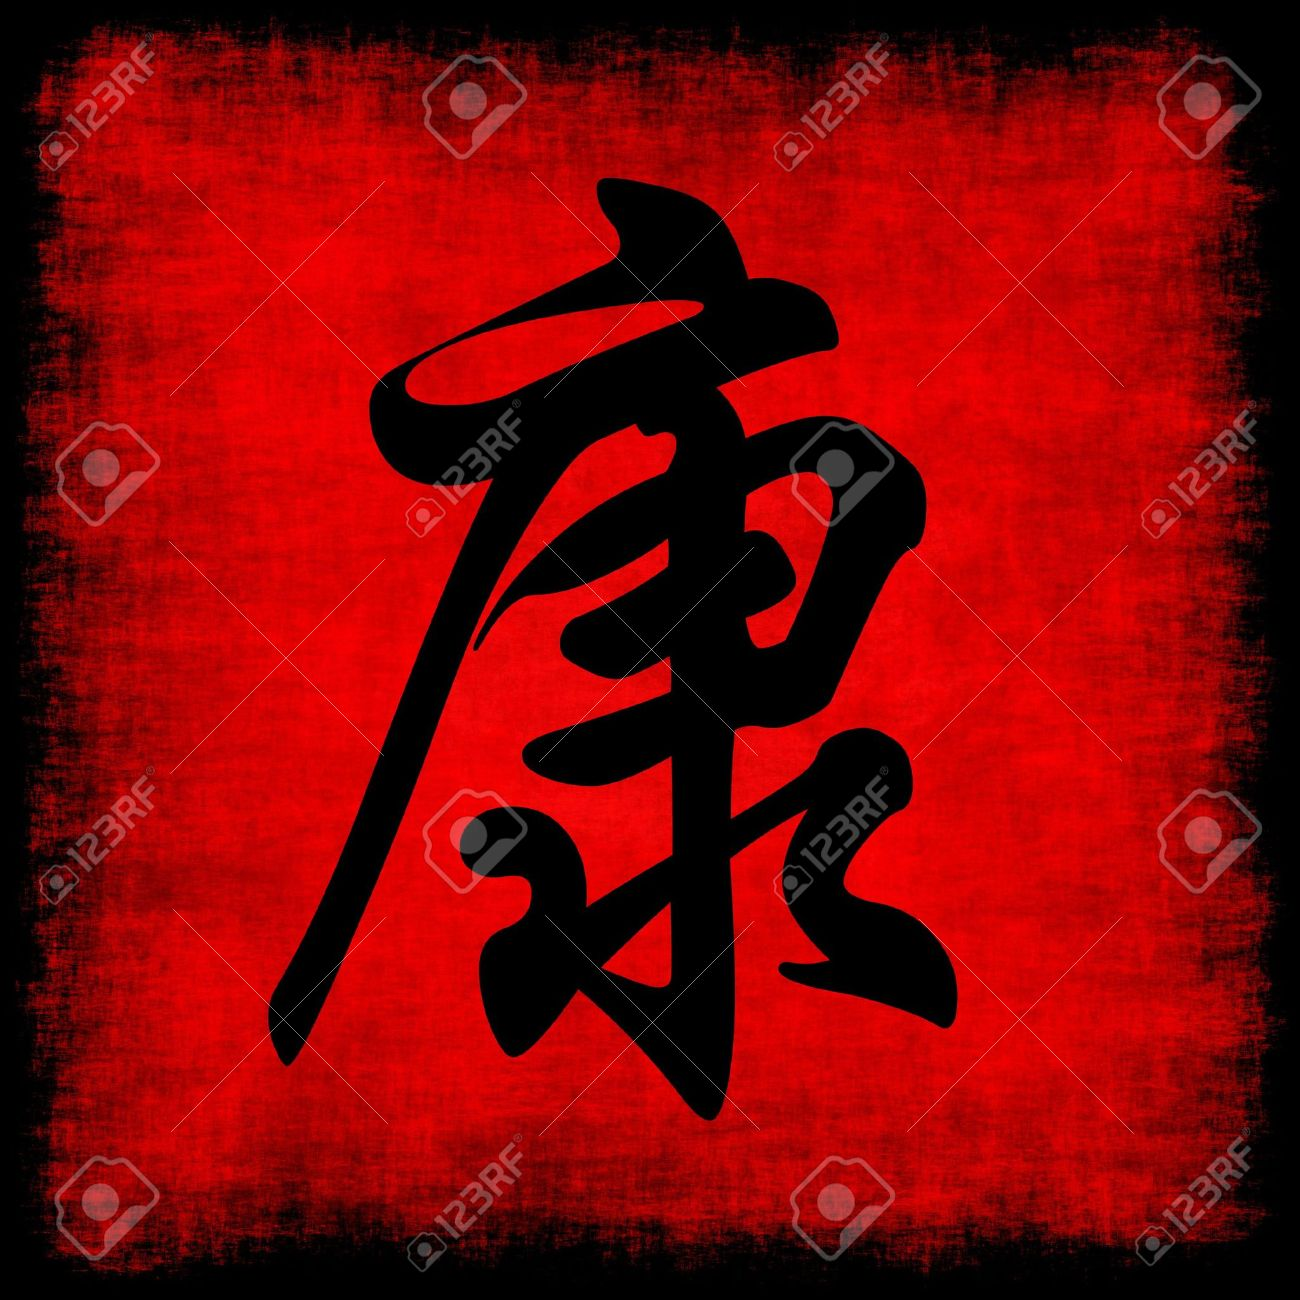 Health chinese calligraphy symbol grunge background set stock health chinese calligraphy symbol grunge background set stock photo 6188127 biocorpaavc Gallery